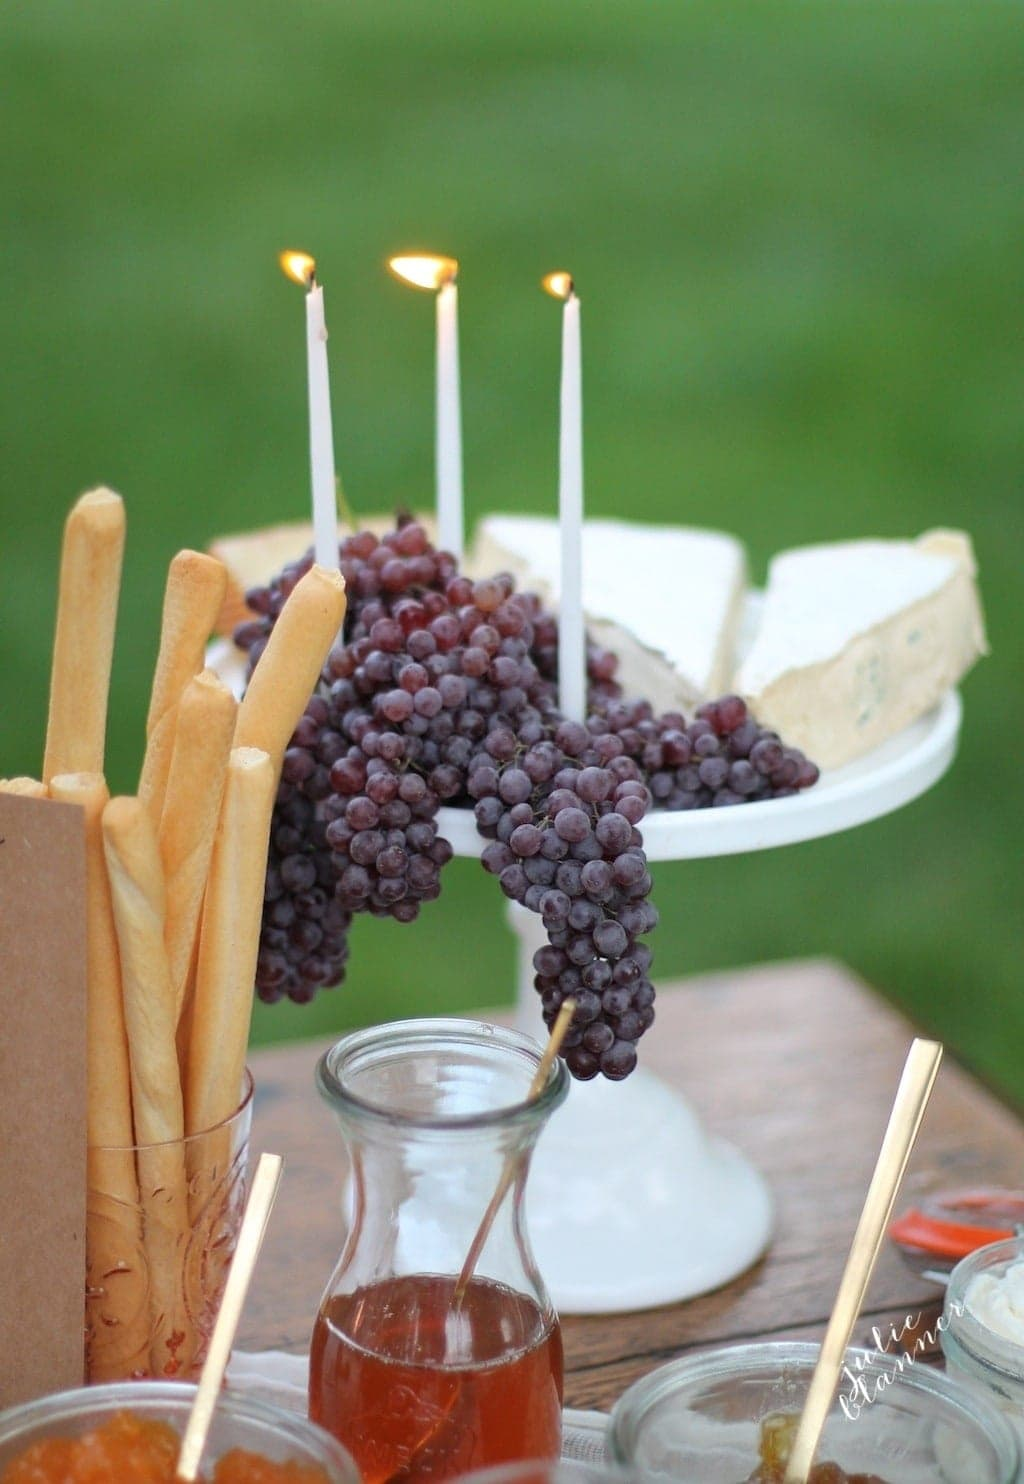 Using a cake platter, cheese & grapes become a gorgeous centerpiece